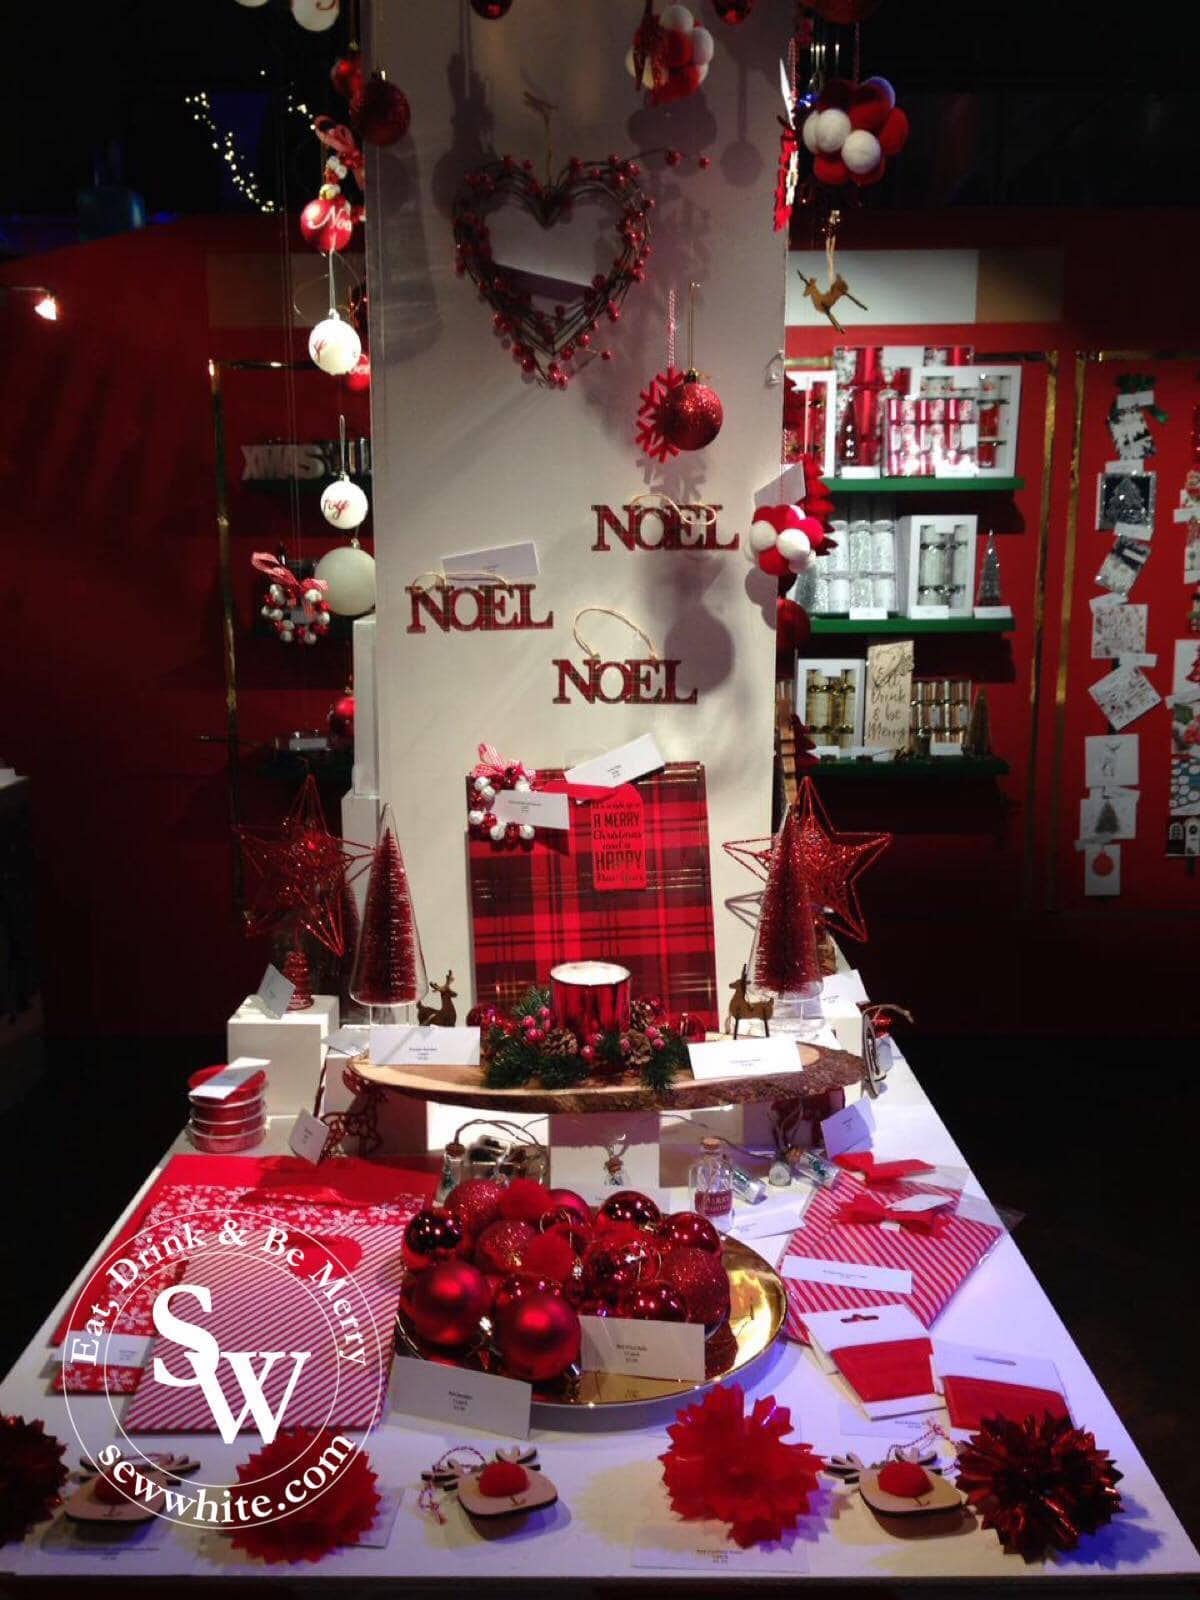 decorations and christmas gift wrap at the morrisons show case